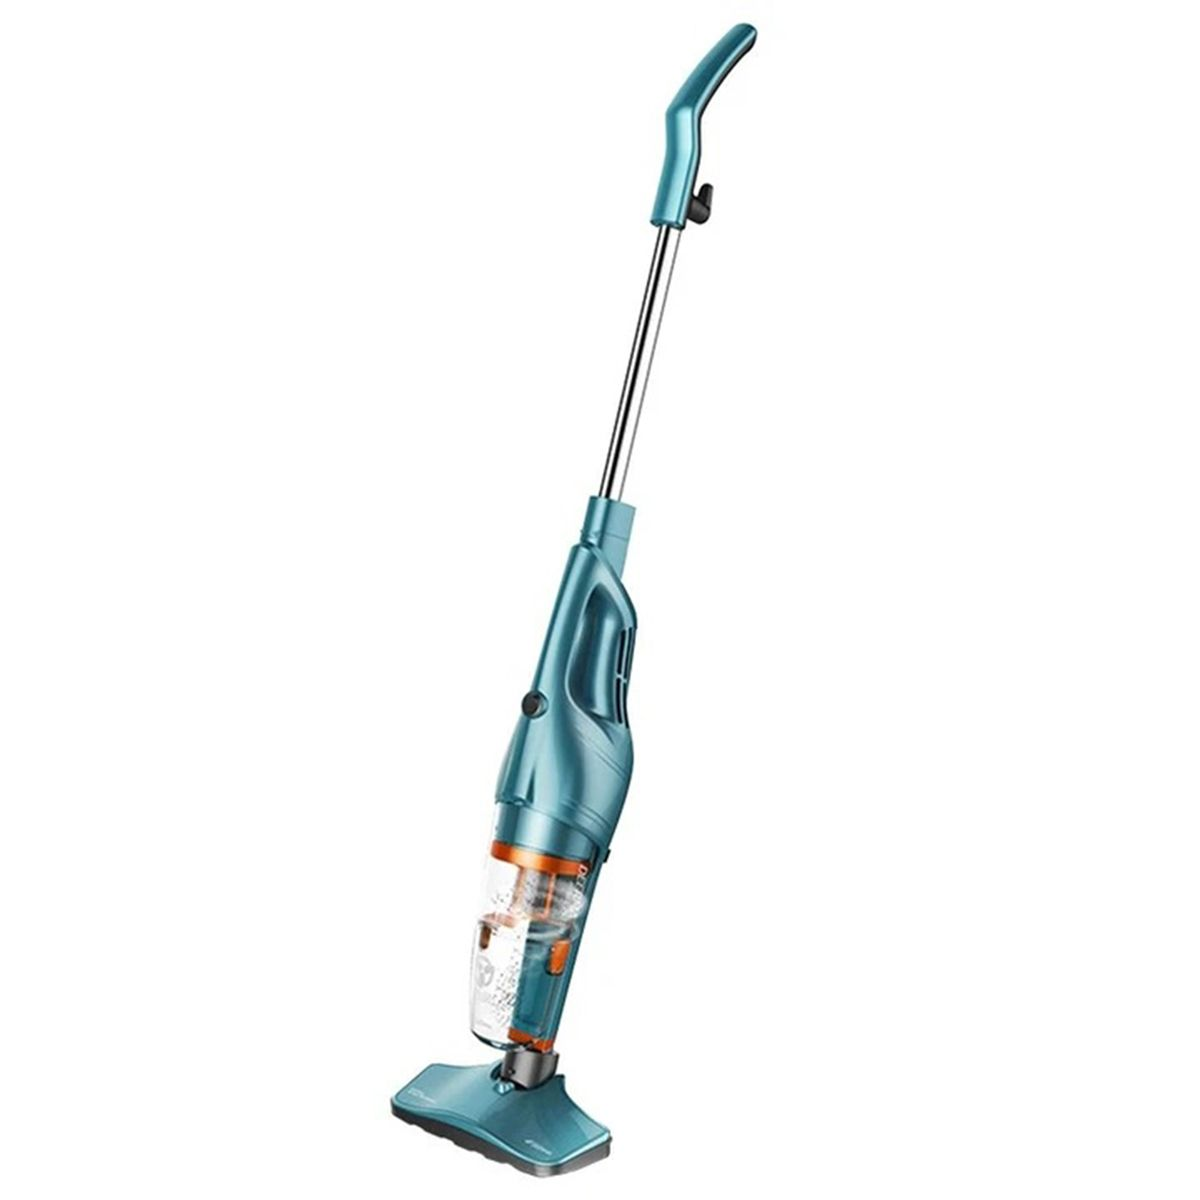 Deerma DX900 2-in-1 Handheld/Stick vacuum Cleaner for home with HEPA filter